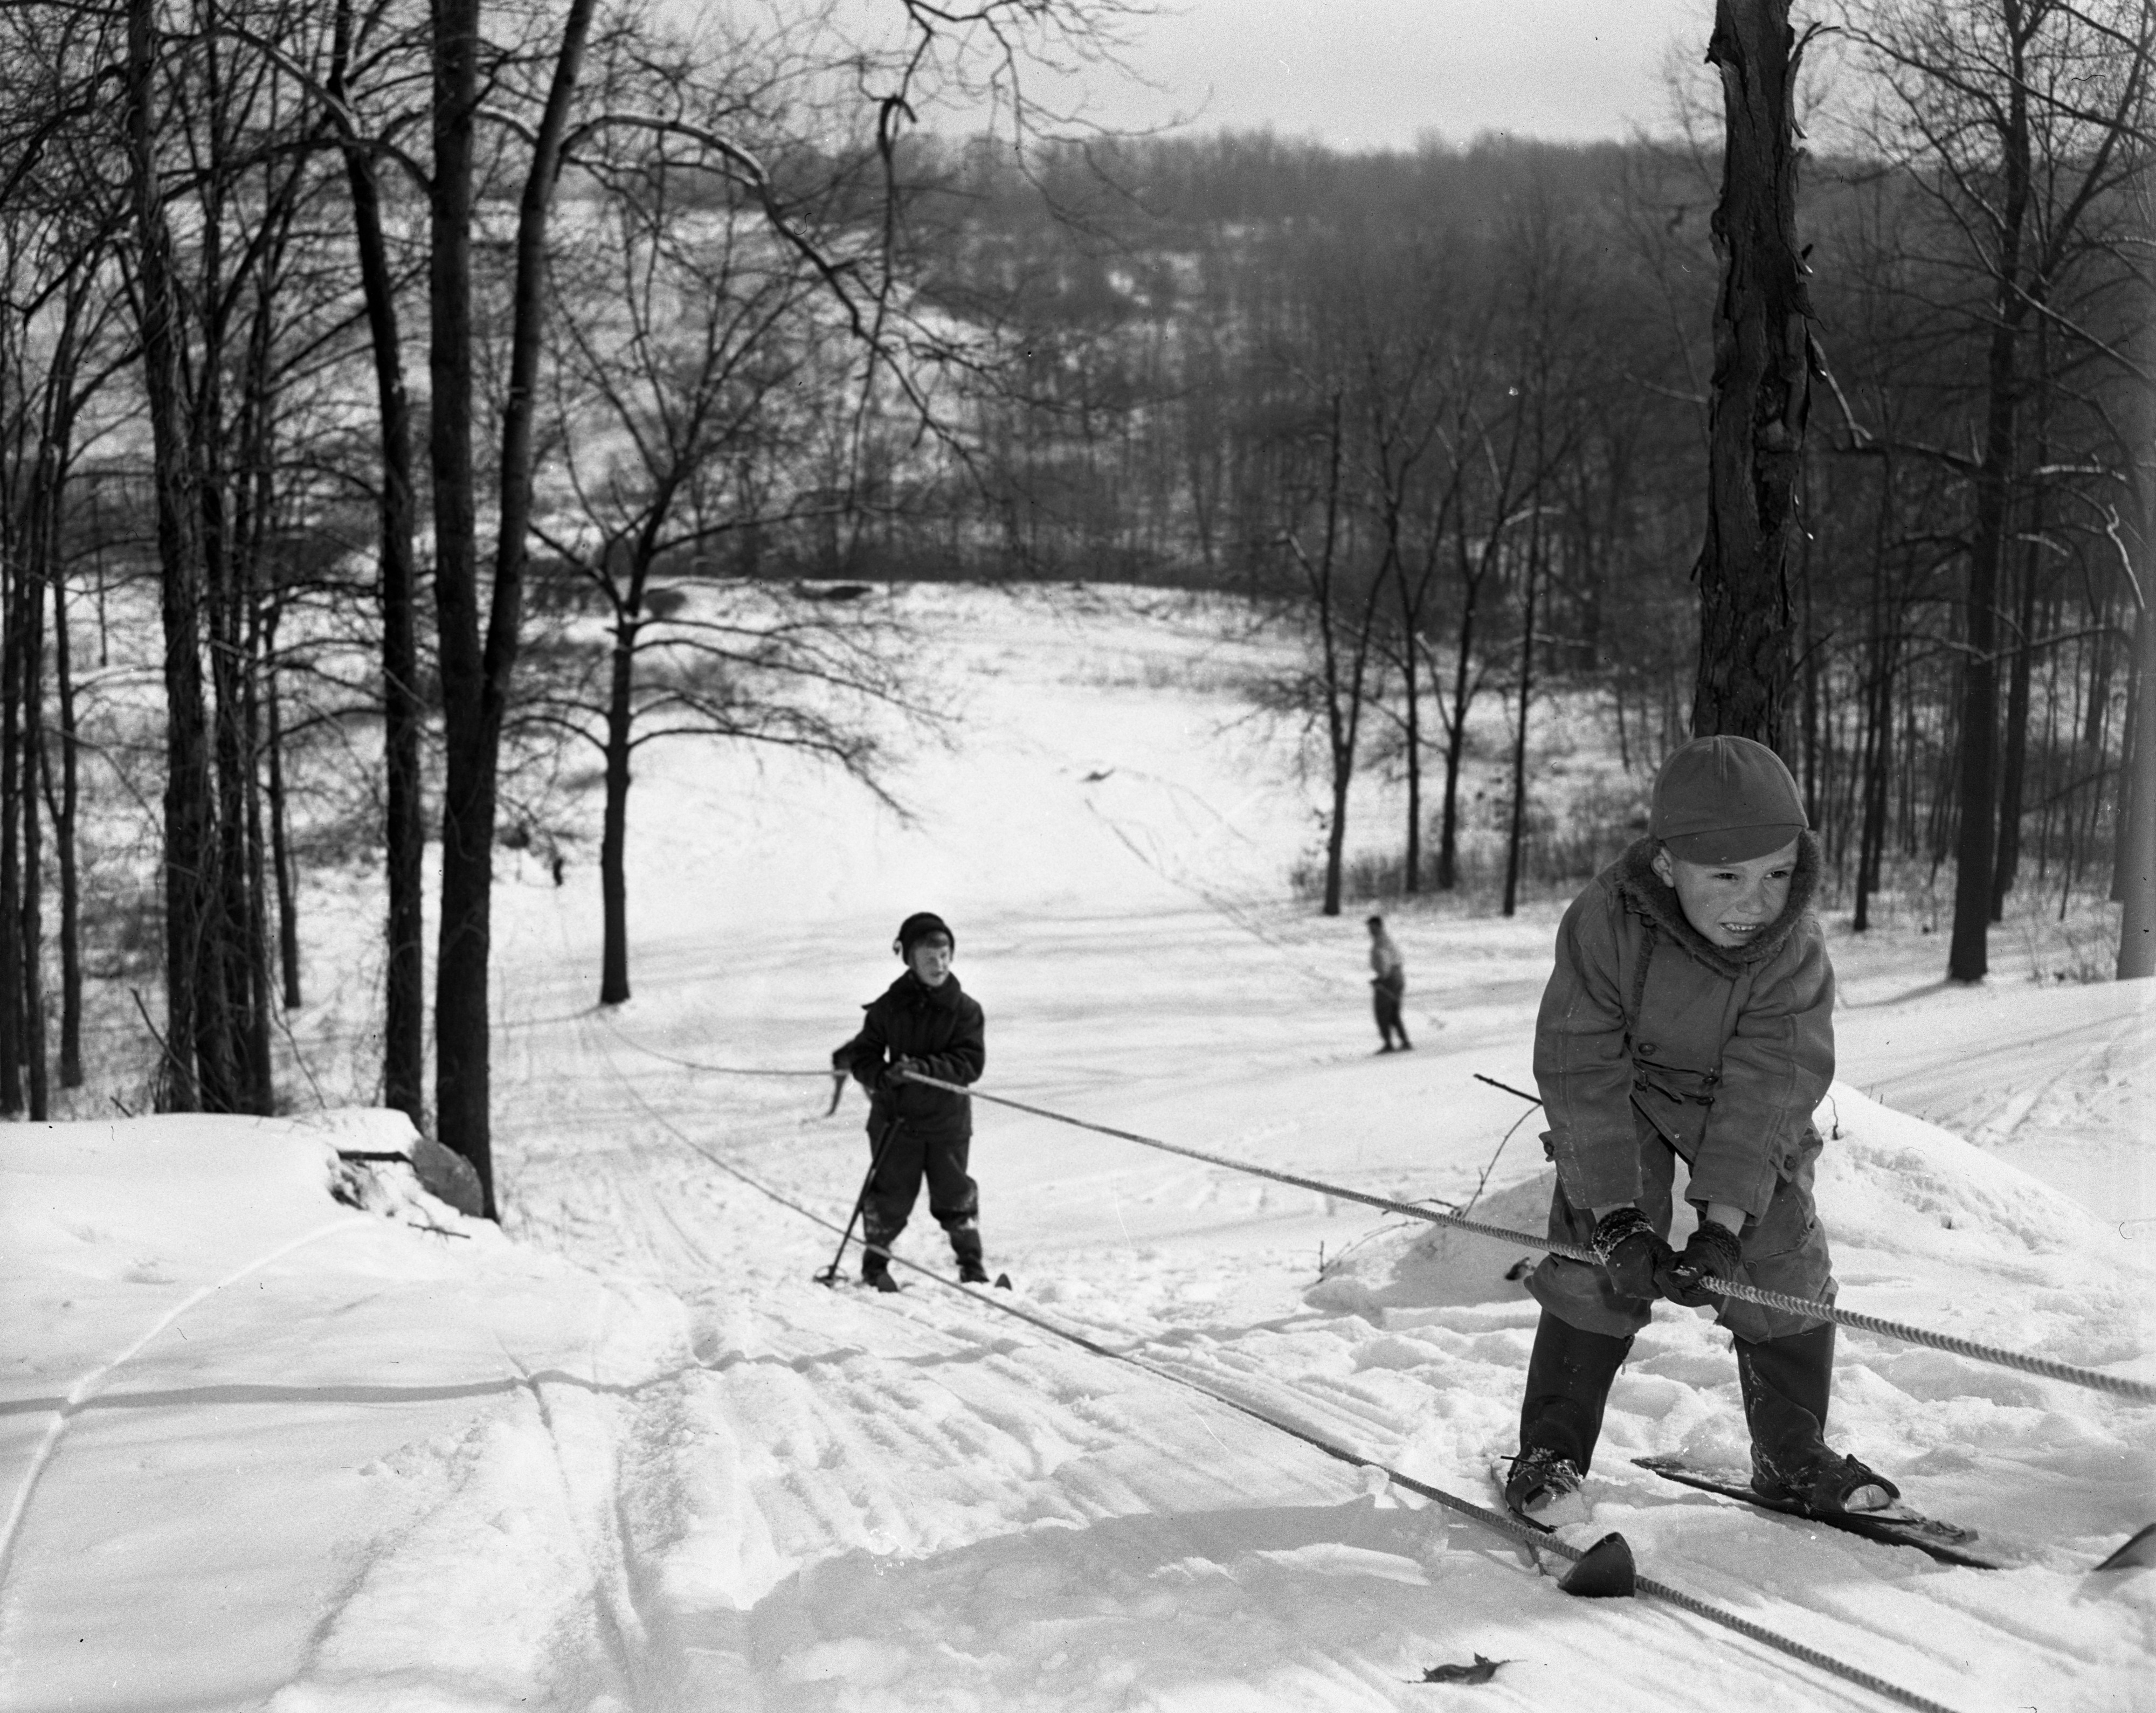 Ski tow at Barton Hills, January, 1951 image